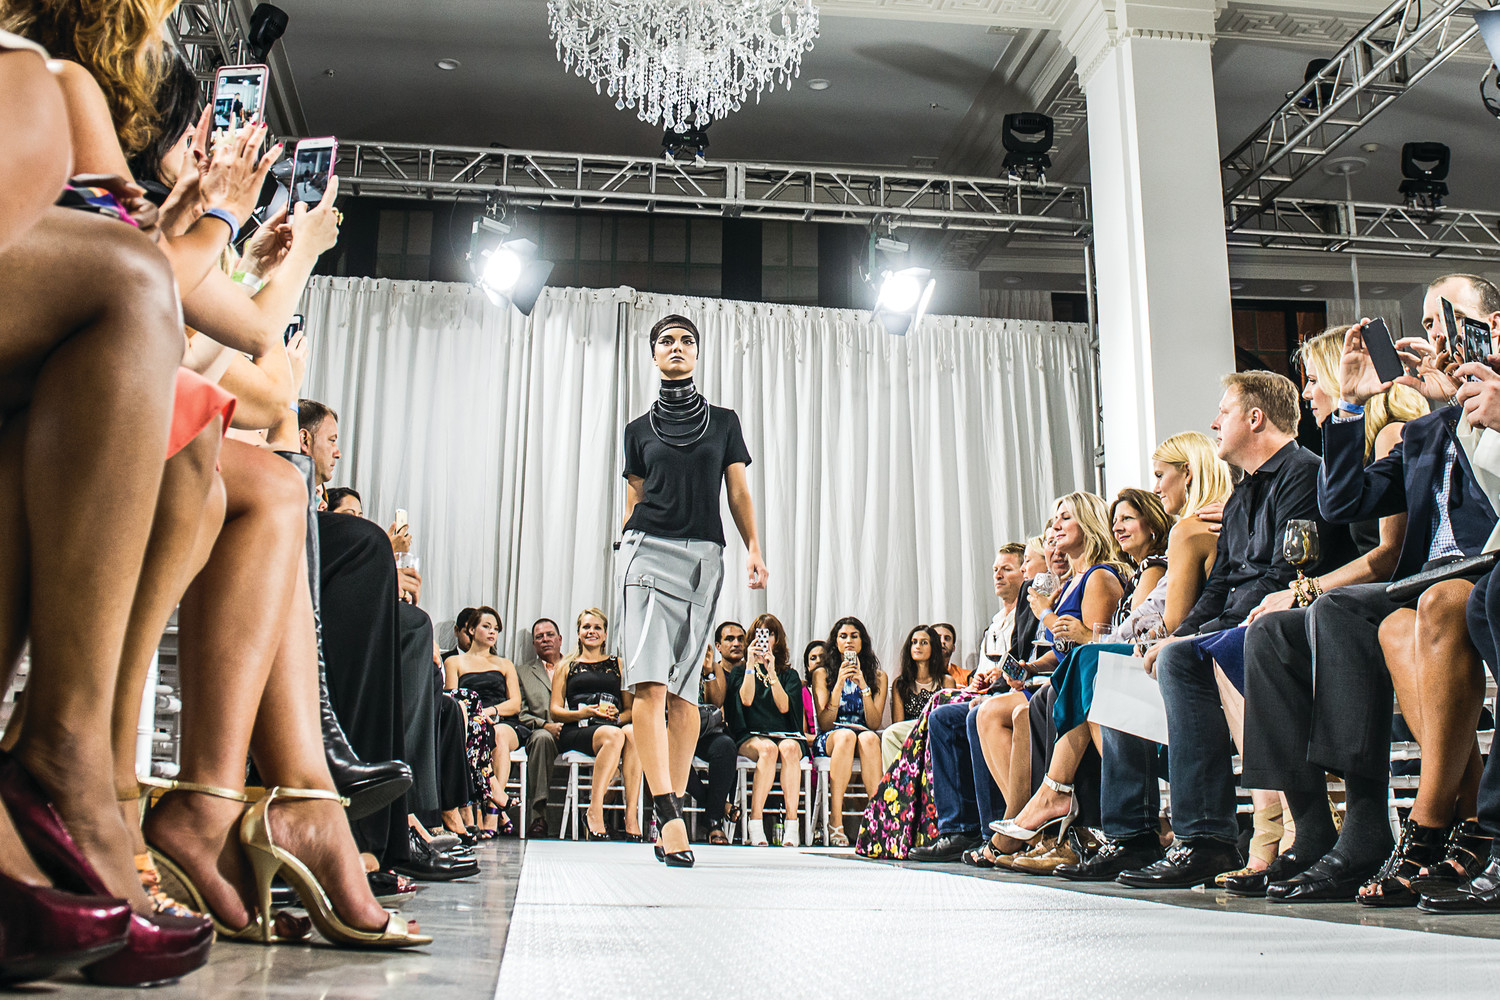 Styleweek Northeast returns to Providence, February 21-24